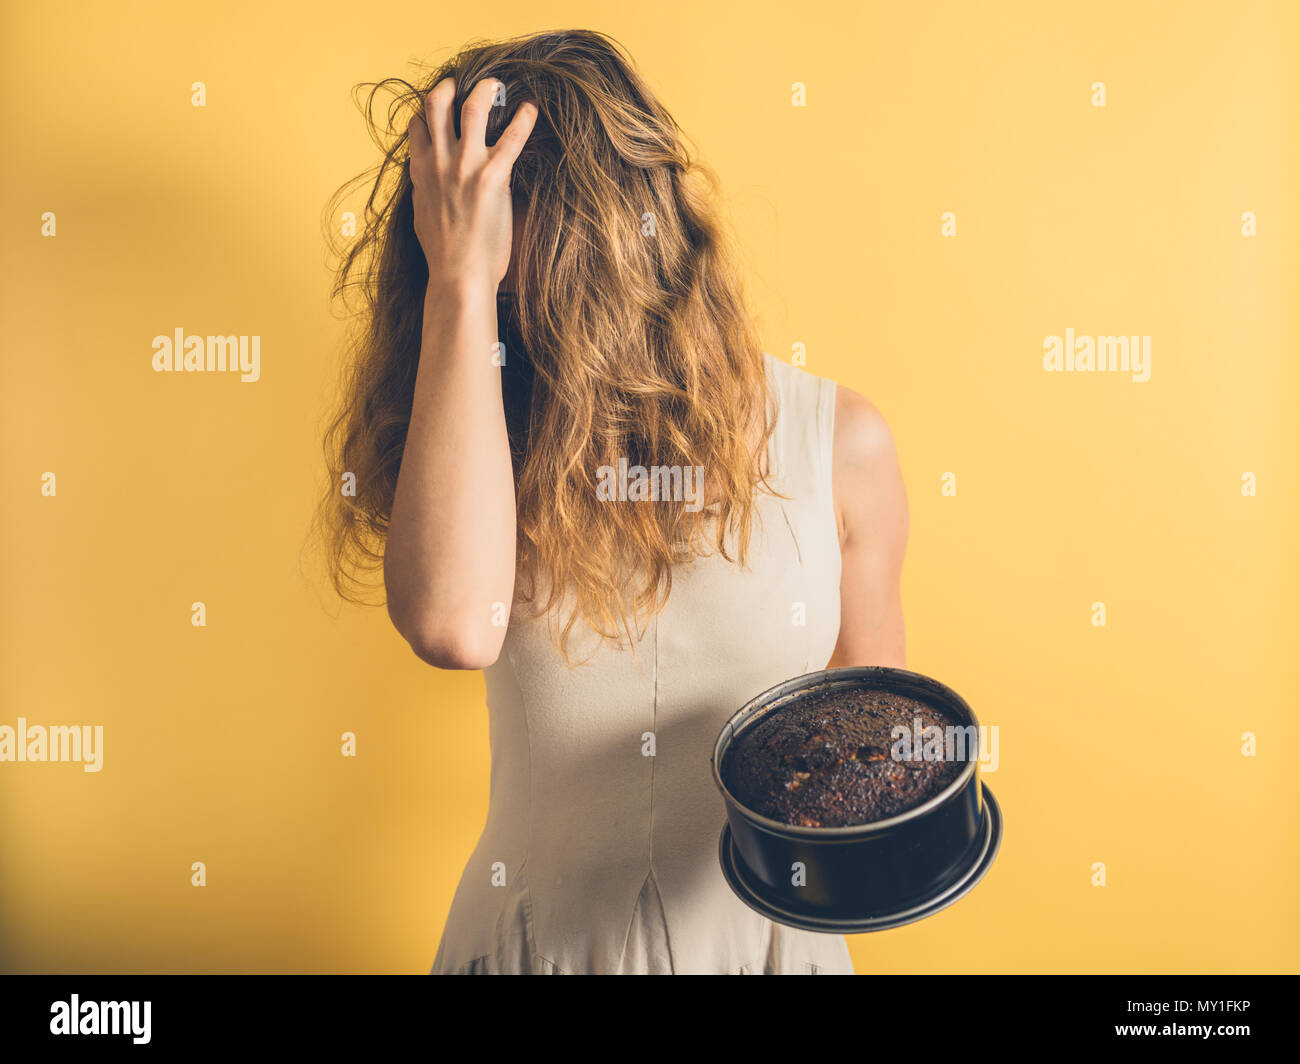 A young woman with a burnt cake is pulling her hair - Stock Image